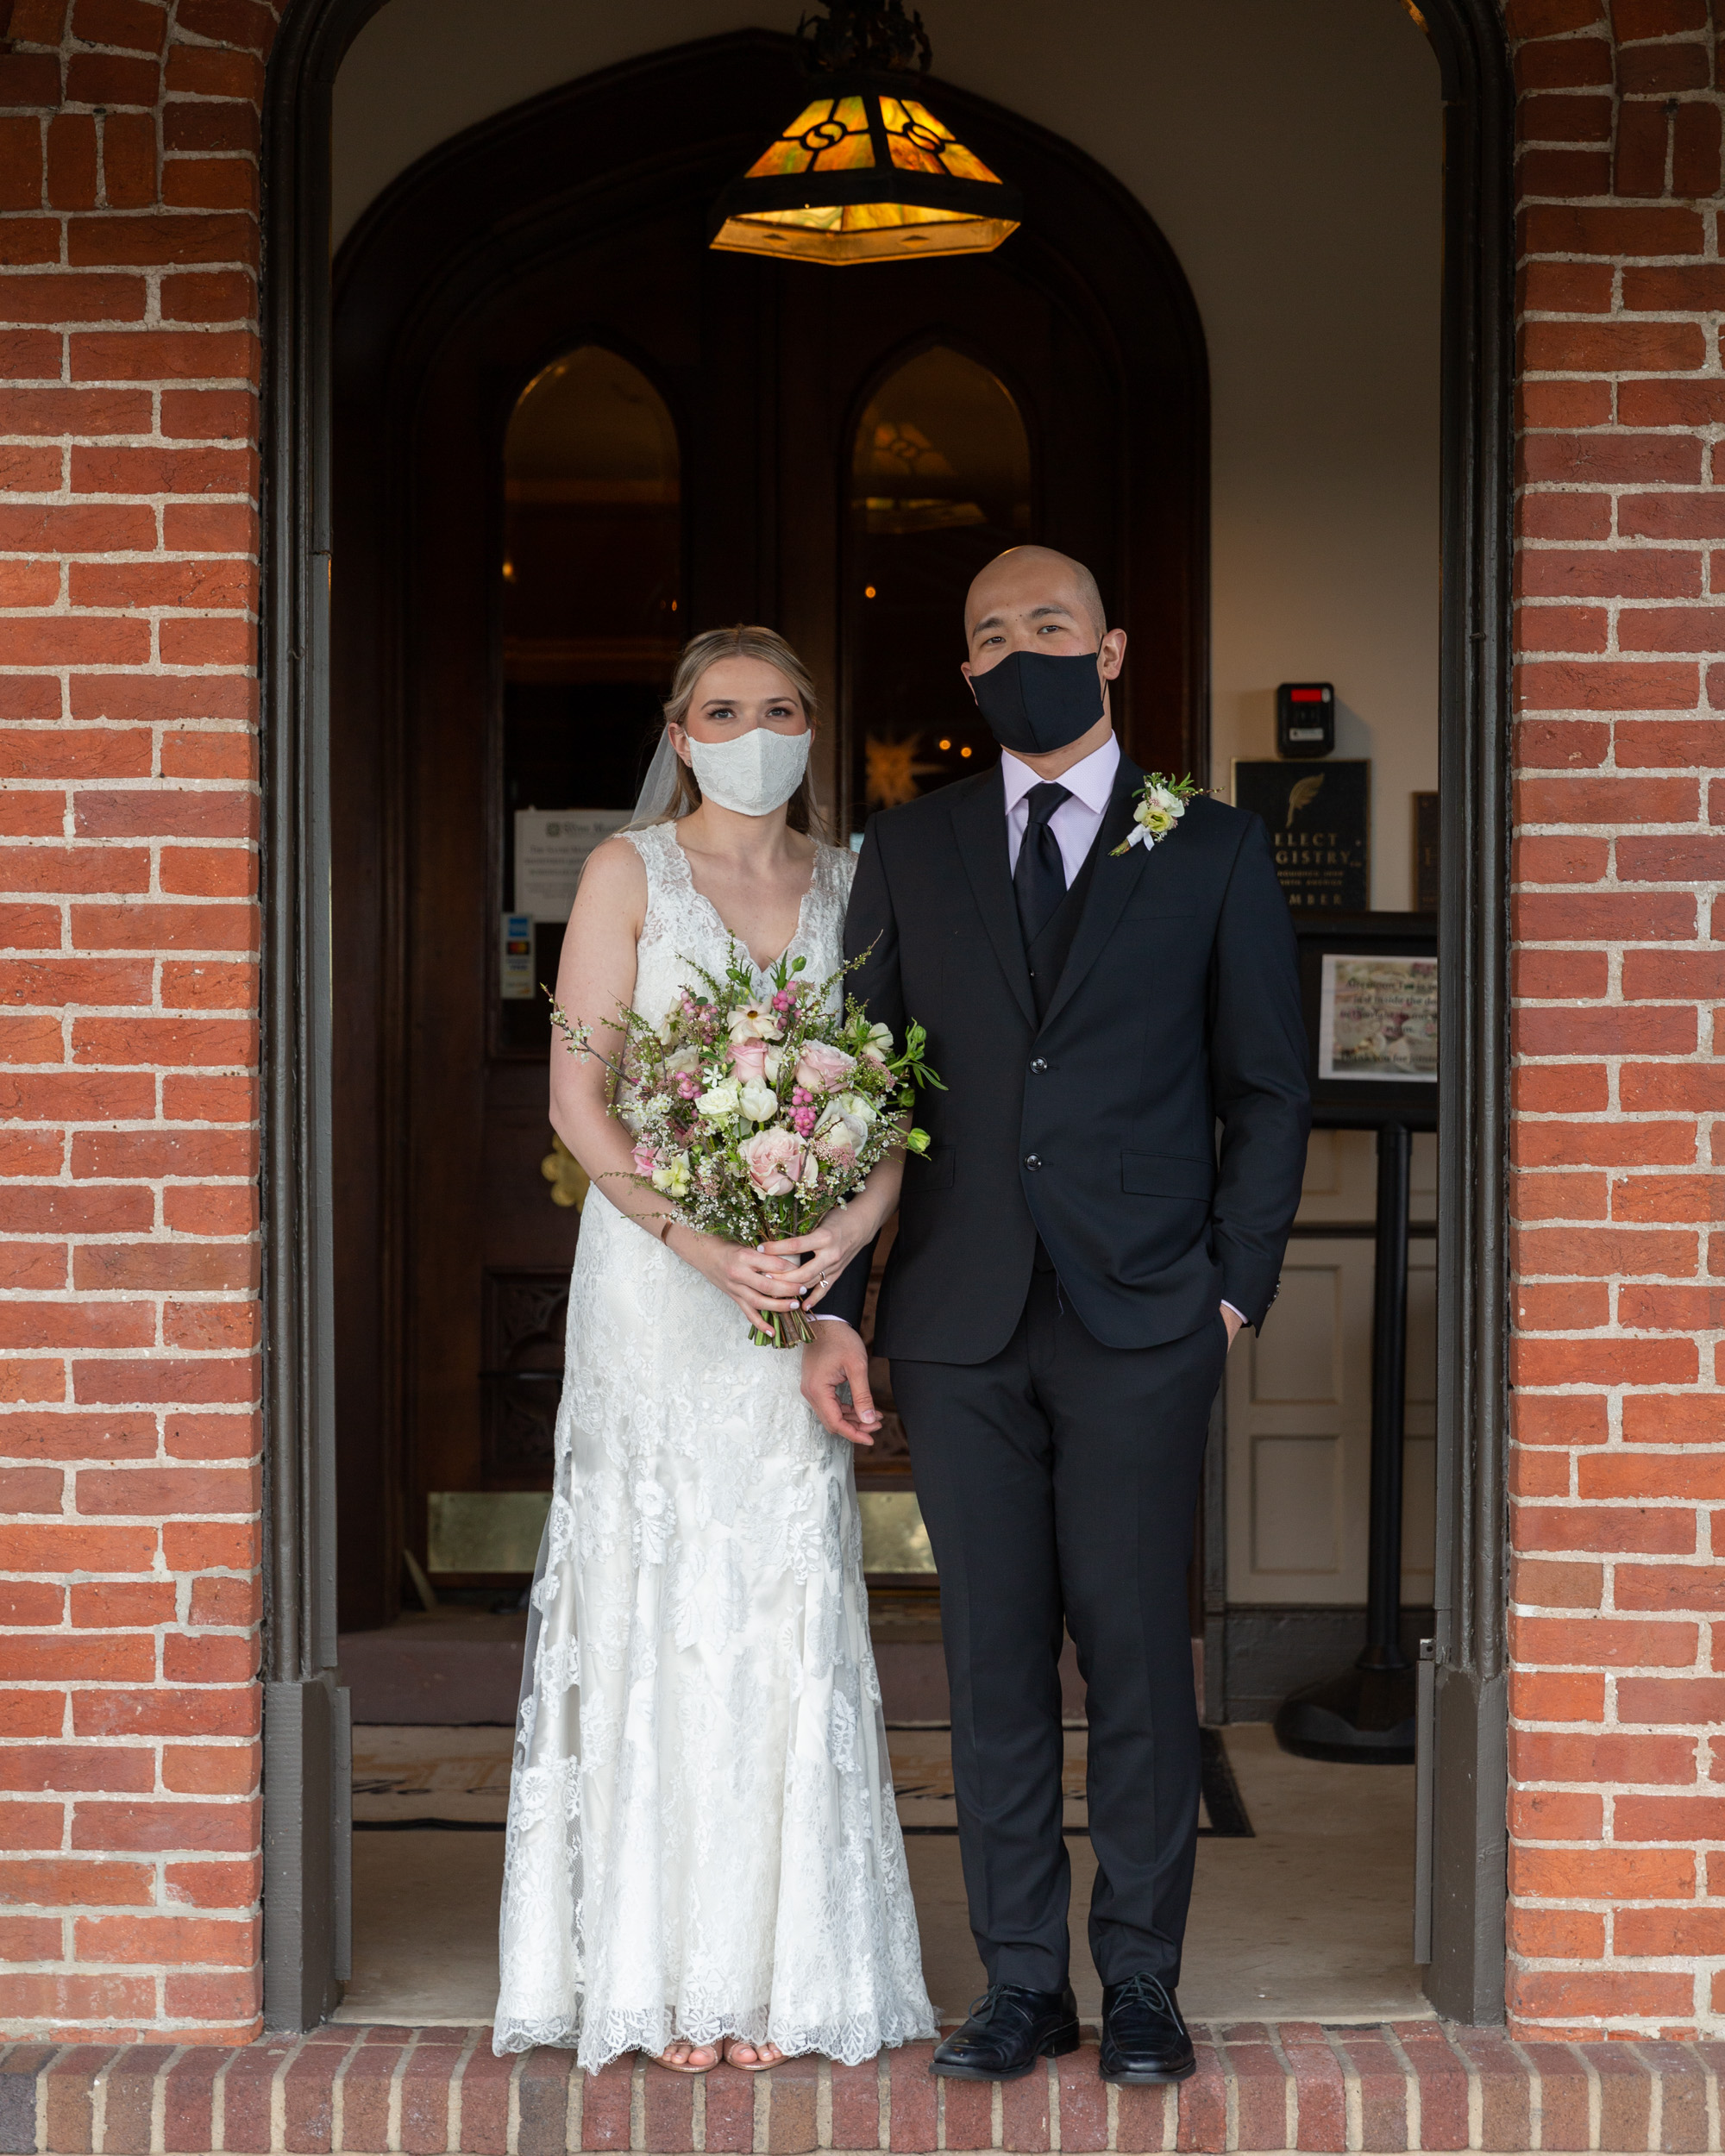 Elegant bride and groom wearing masks during COVID-19 in a historic doorway at the Sayre Mansion in Bethlehem, PA by Laura Billingham Photography